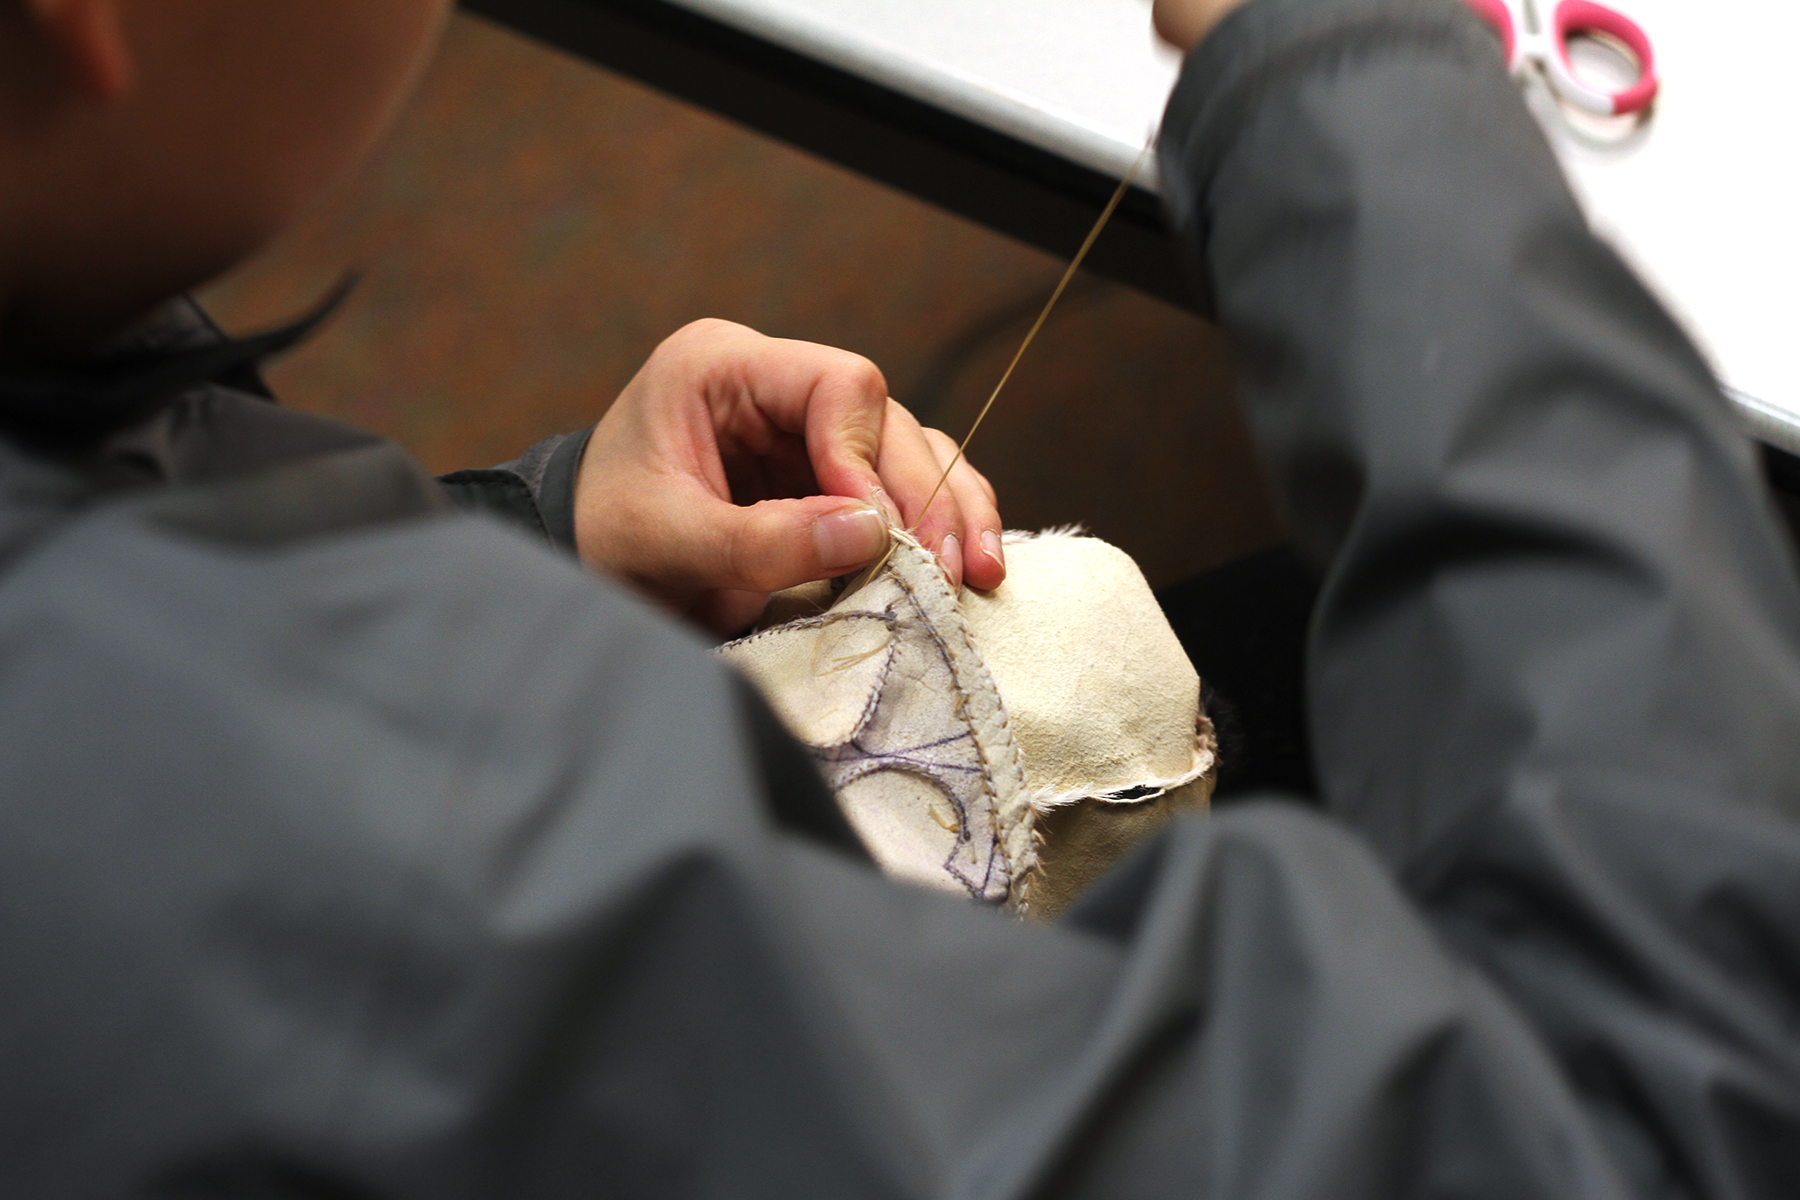 A young woman sews a pair of mukluks, or leather boots, in a traditional sewing class she's taking at the local tribal college. She sews with caribou sinew thread that her grandmother made, an increasingly rare choice.